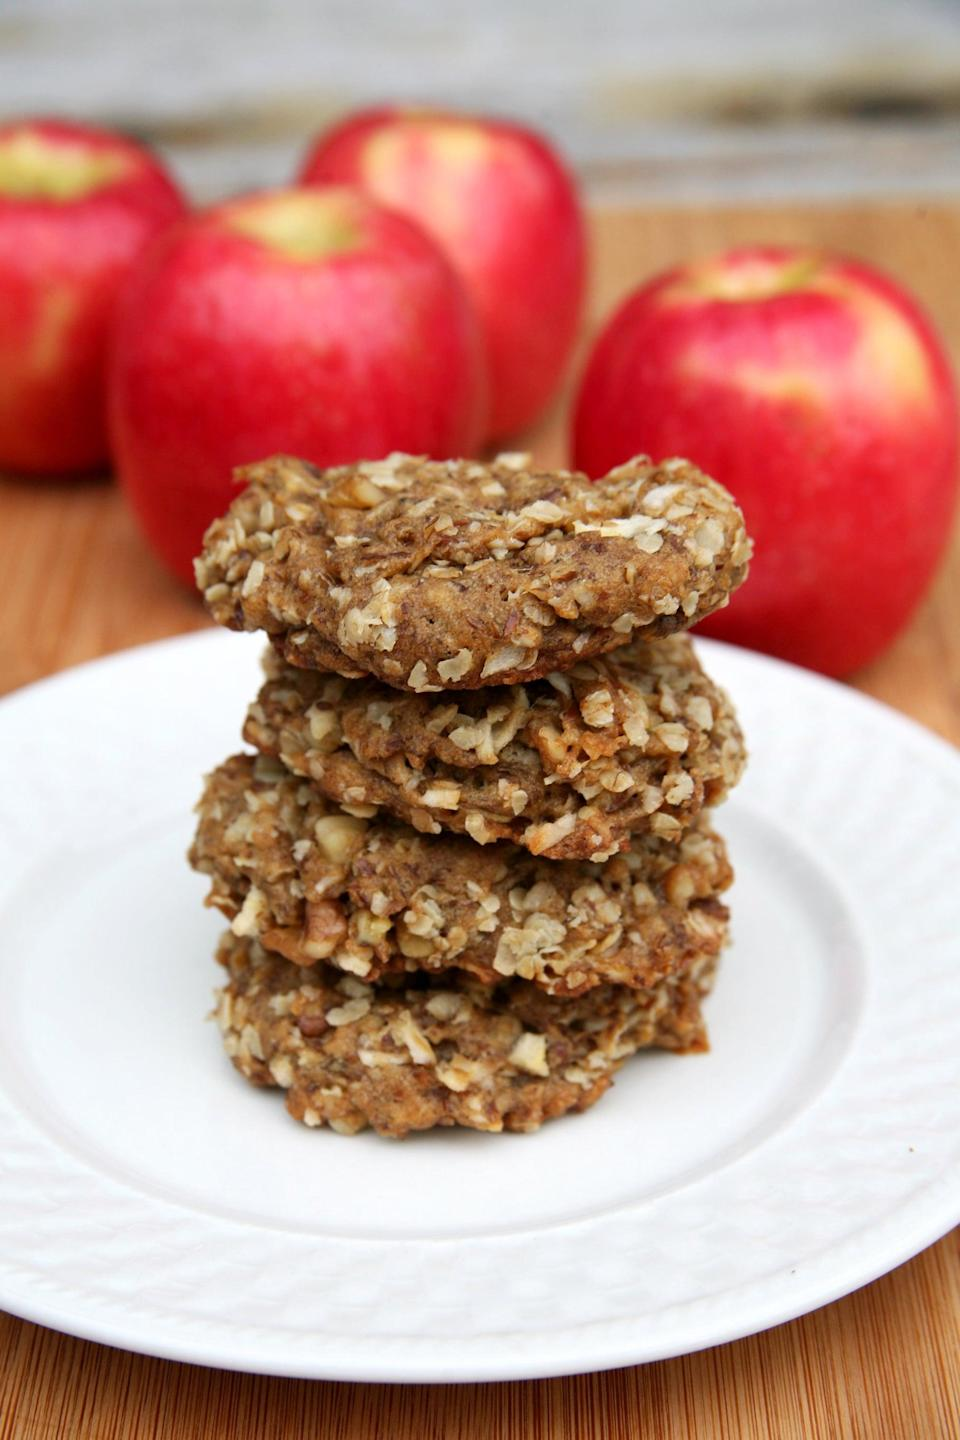 "<p>Apples, oats, and flaxmeal boost the fiber in these sweet cinnamon breakfast cookies.</p> <p><strong>Calories:</strong><br> <strong>Protein:</strong> grams</p> <p><strong>Get the recipe:</strong> <a href=""https://www.popsugar.com/fitness/Healthy-Recipe-Apple-Oatmeal-Flax-Cookies-5324399"" class=""link rapid-noclick-resp"" rel=""nofollow noopener"" target=""_blank"" data-ylk=""slk:apple flax oatmeal cookies"">apple flax oatmeal cookies</a></p>"